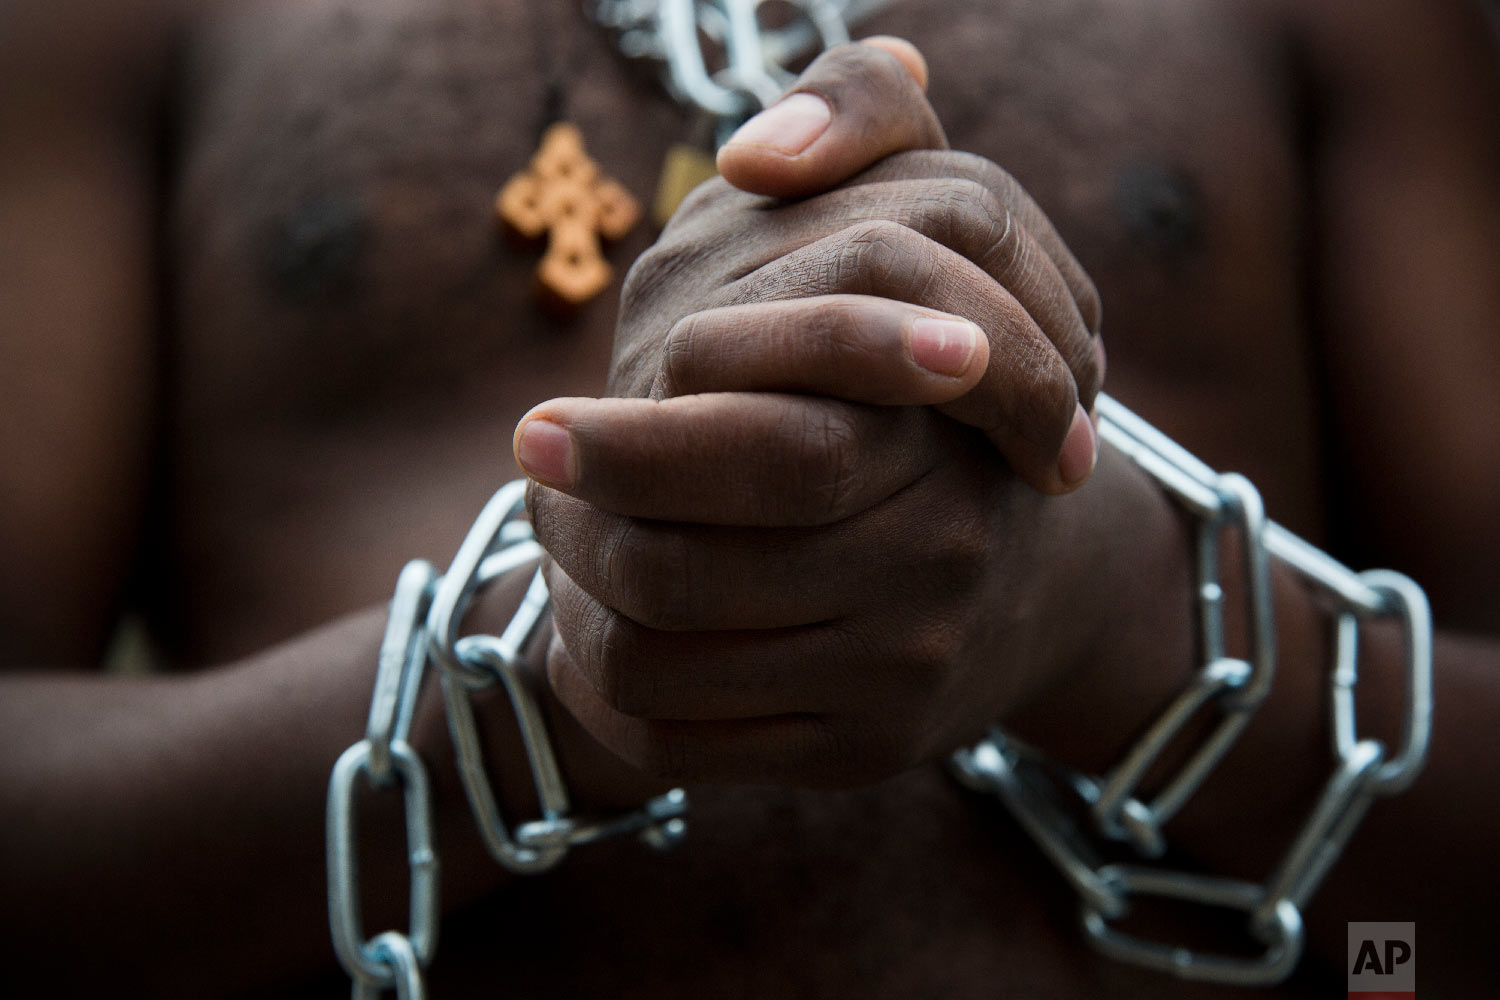 Eritrean migrants wear chains to mimic slaves at a demonstration against the Israeli government's policy to forcibly deport African refugees and asylum seekers from Israel to Uganda and Rwanda, outside the Knesset, Israel's parliament, in Jerusalem, Jan. 17, 2018. (AP Photo/Oded Balilty)